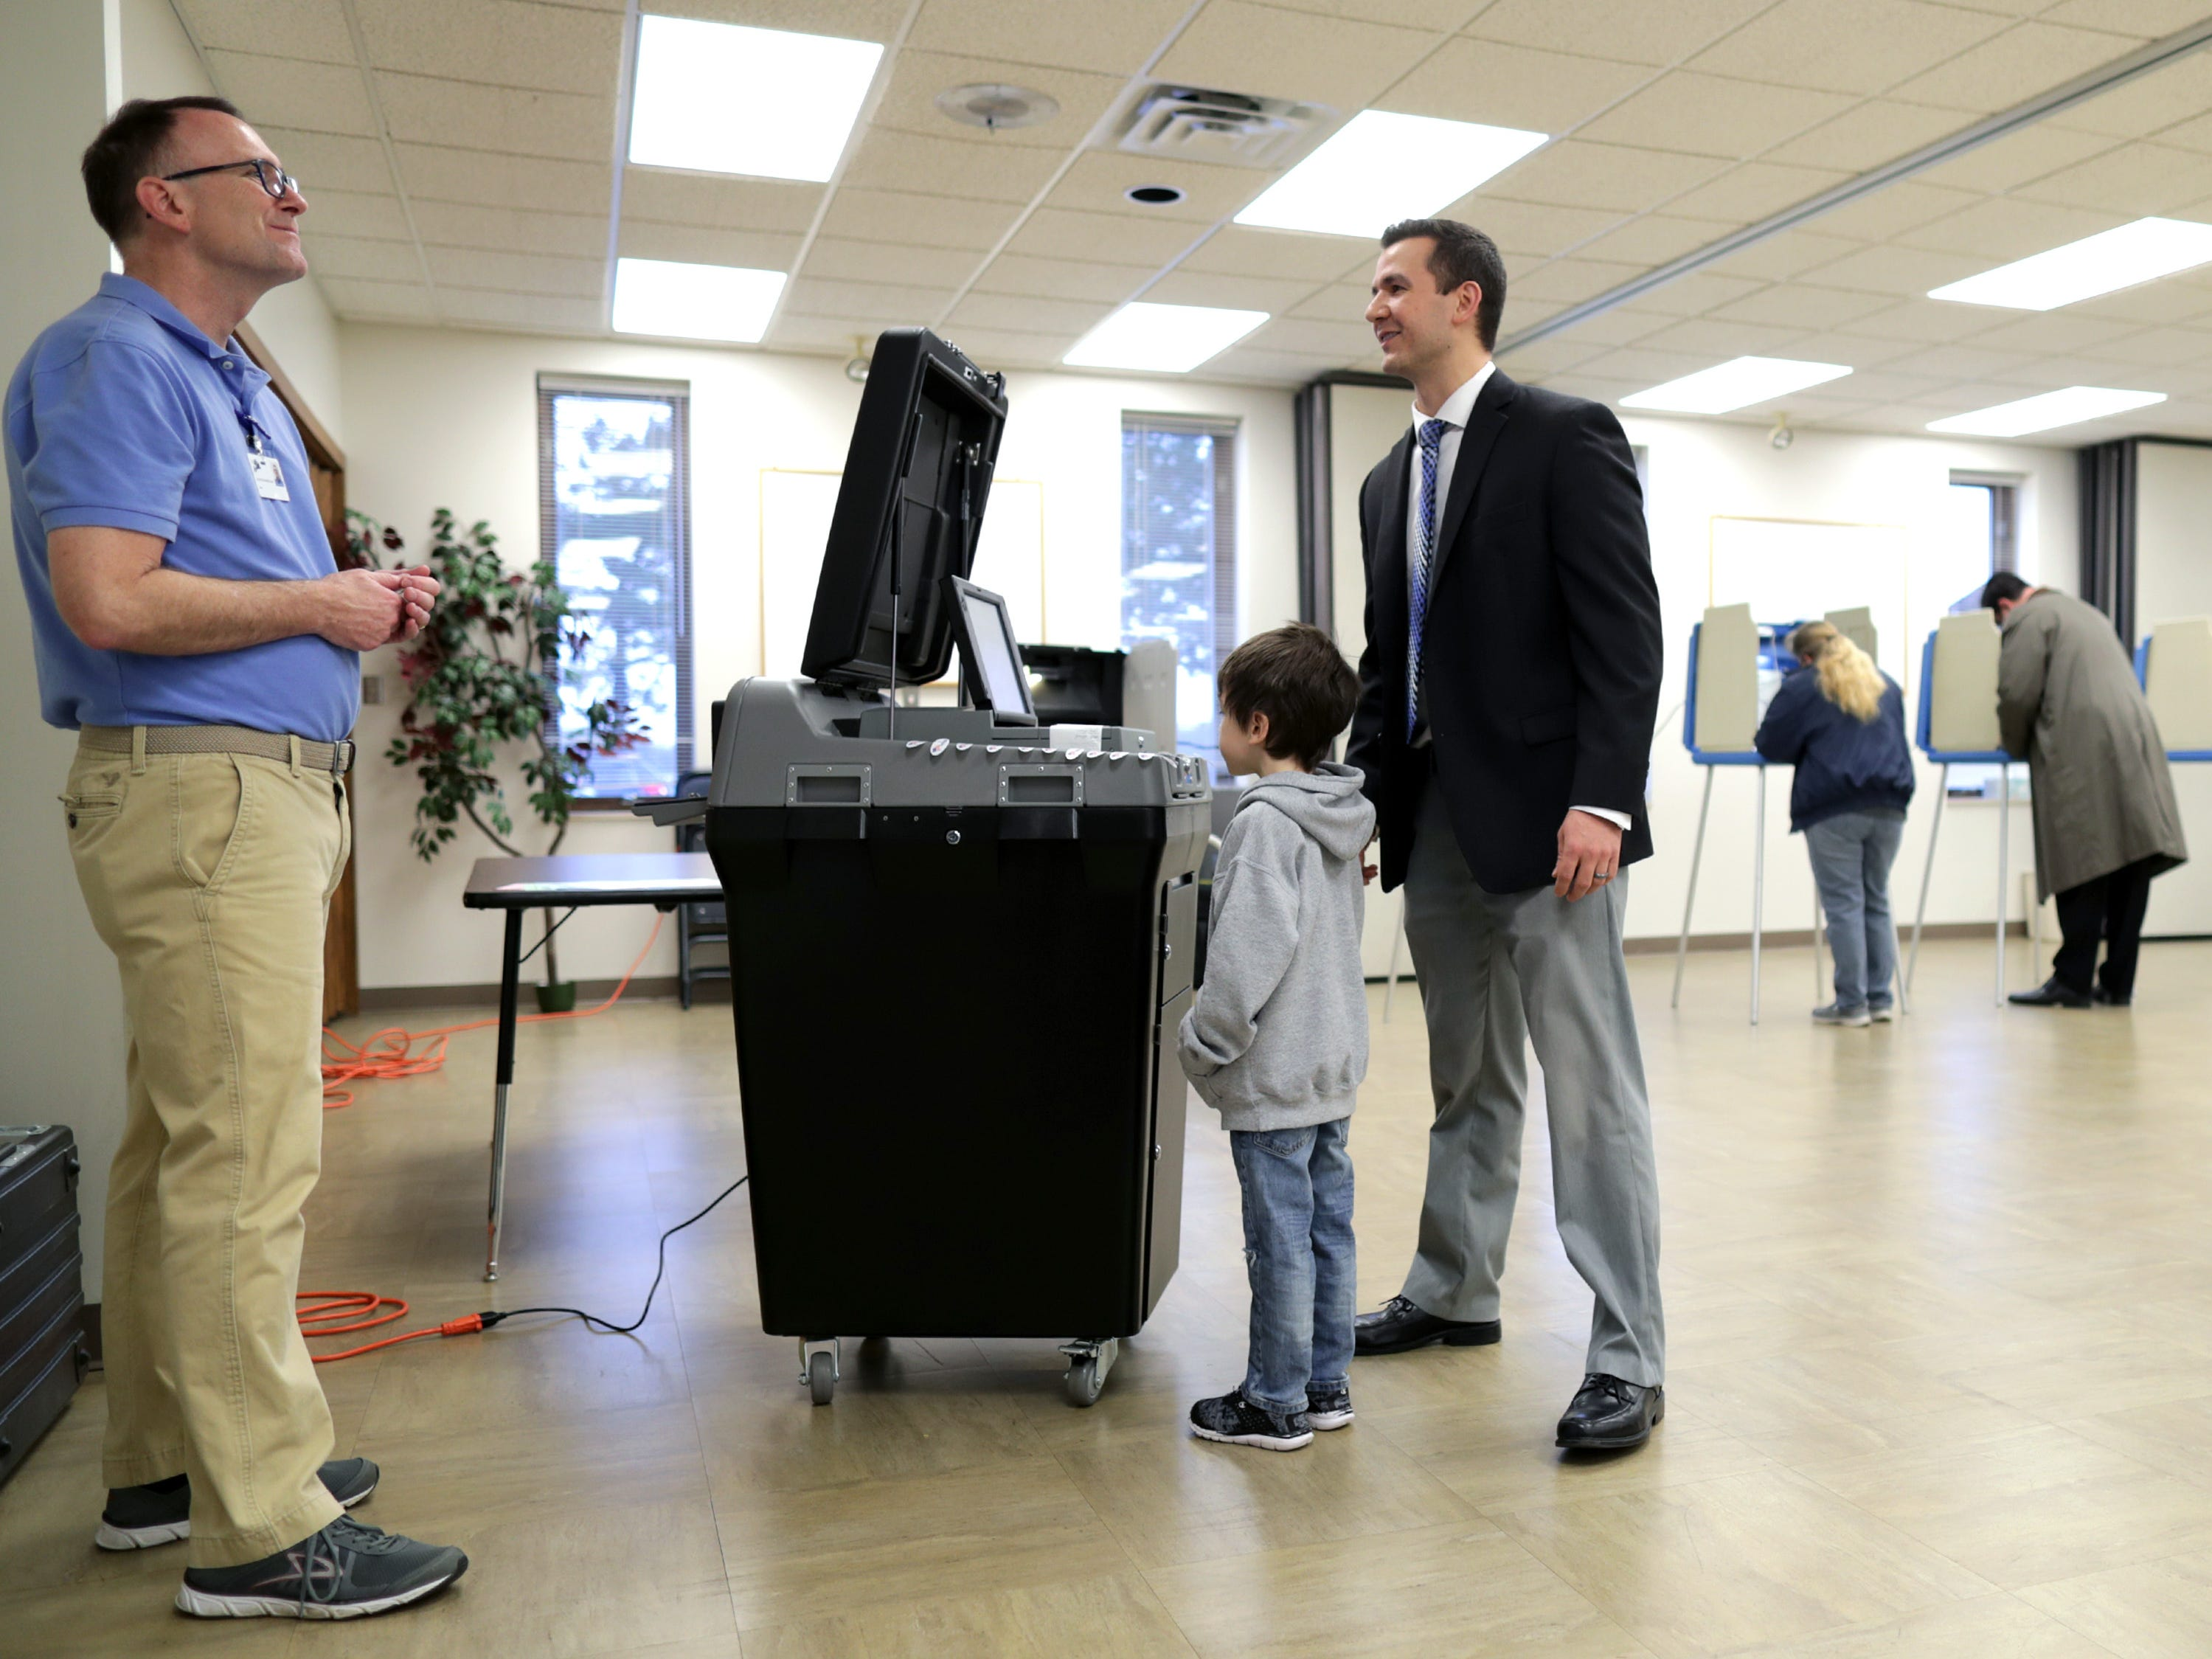 Chief Elections Inspector Alan Stewart, left, talks with Mike Slowinski and his son Abraham as voters cast their ballots in the midterm elections at Prince of Peace Lutheran Church on Tuesday, November 6, 2018, in Appleton, Wis.